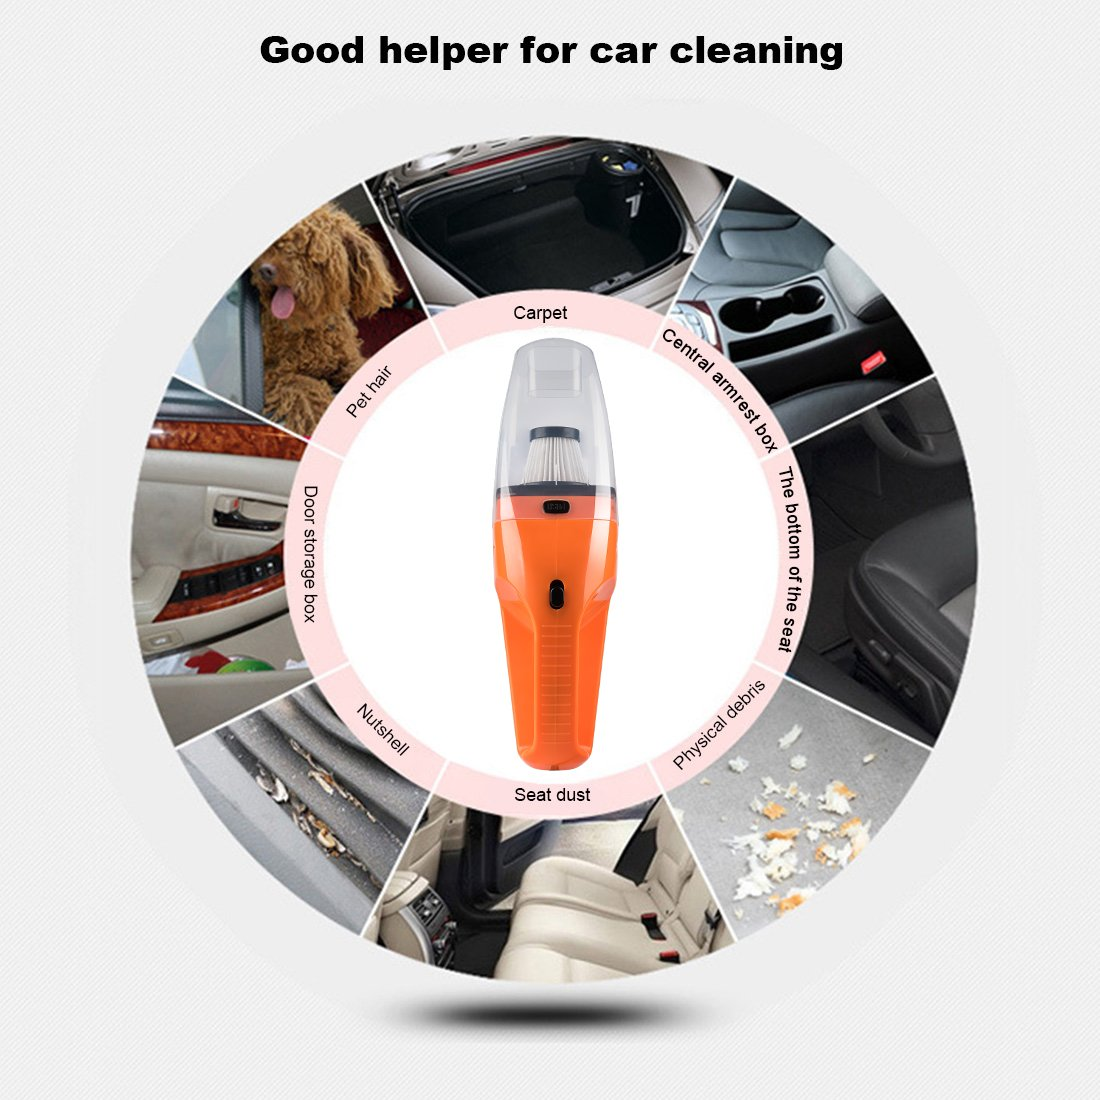 Car Vacuum Cleaner DC 12V Wet Dry Auto Dustbuster Portable Handheld Auto Vacuum Cleaner for Car 4000Pa Suction 120W Car Hoover with HEAP Filter & 5 Meters/16.4 FT Power Cord(1 Yr Warranty) Orange by candyfouse (Image #5)